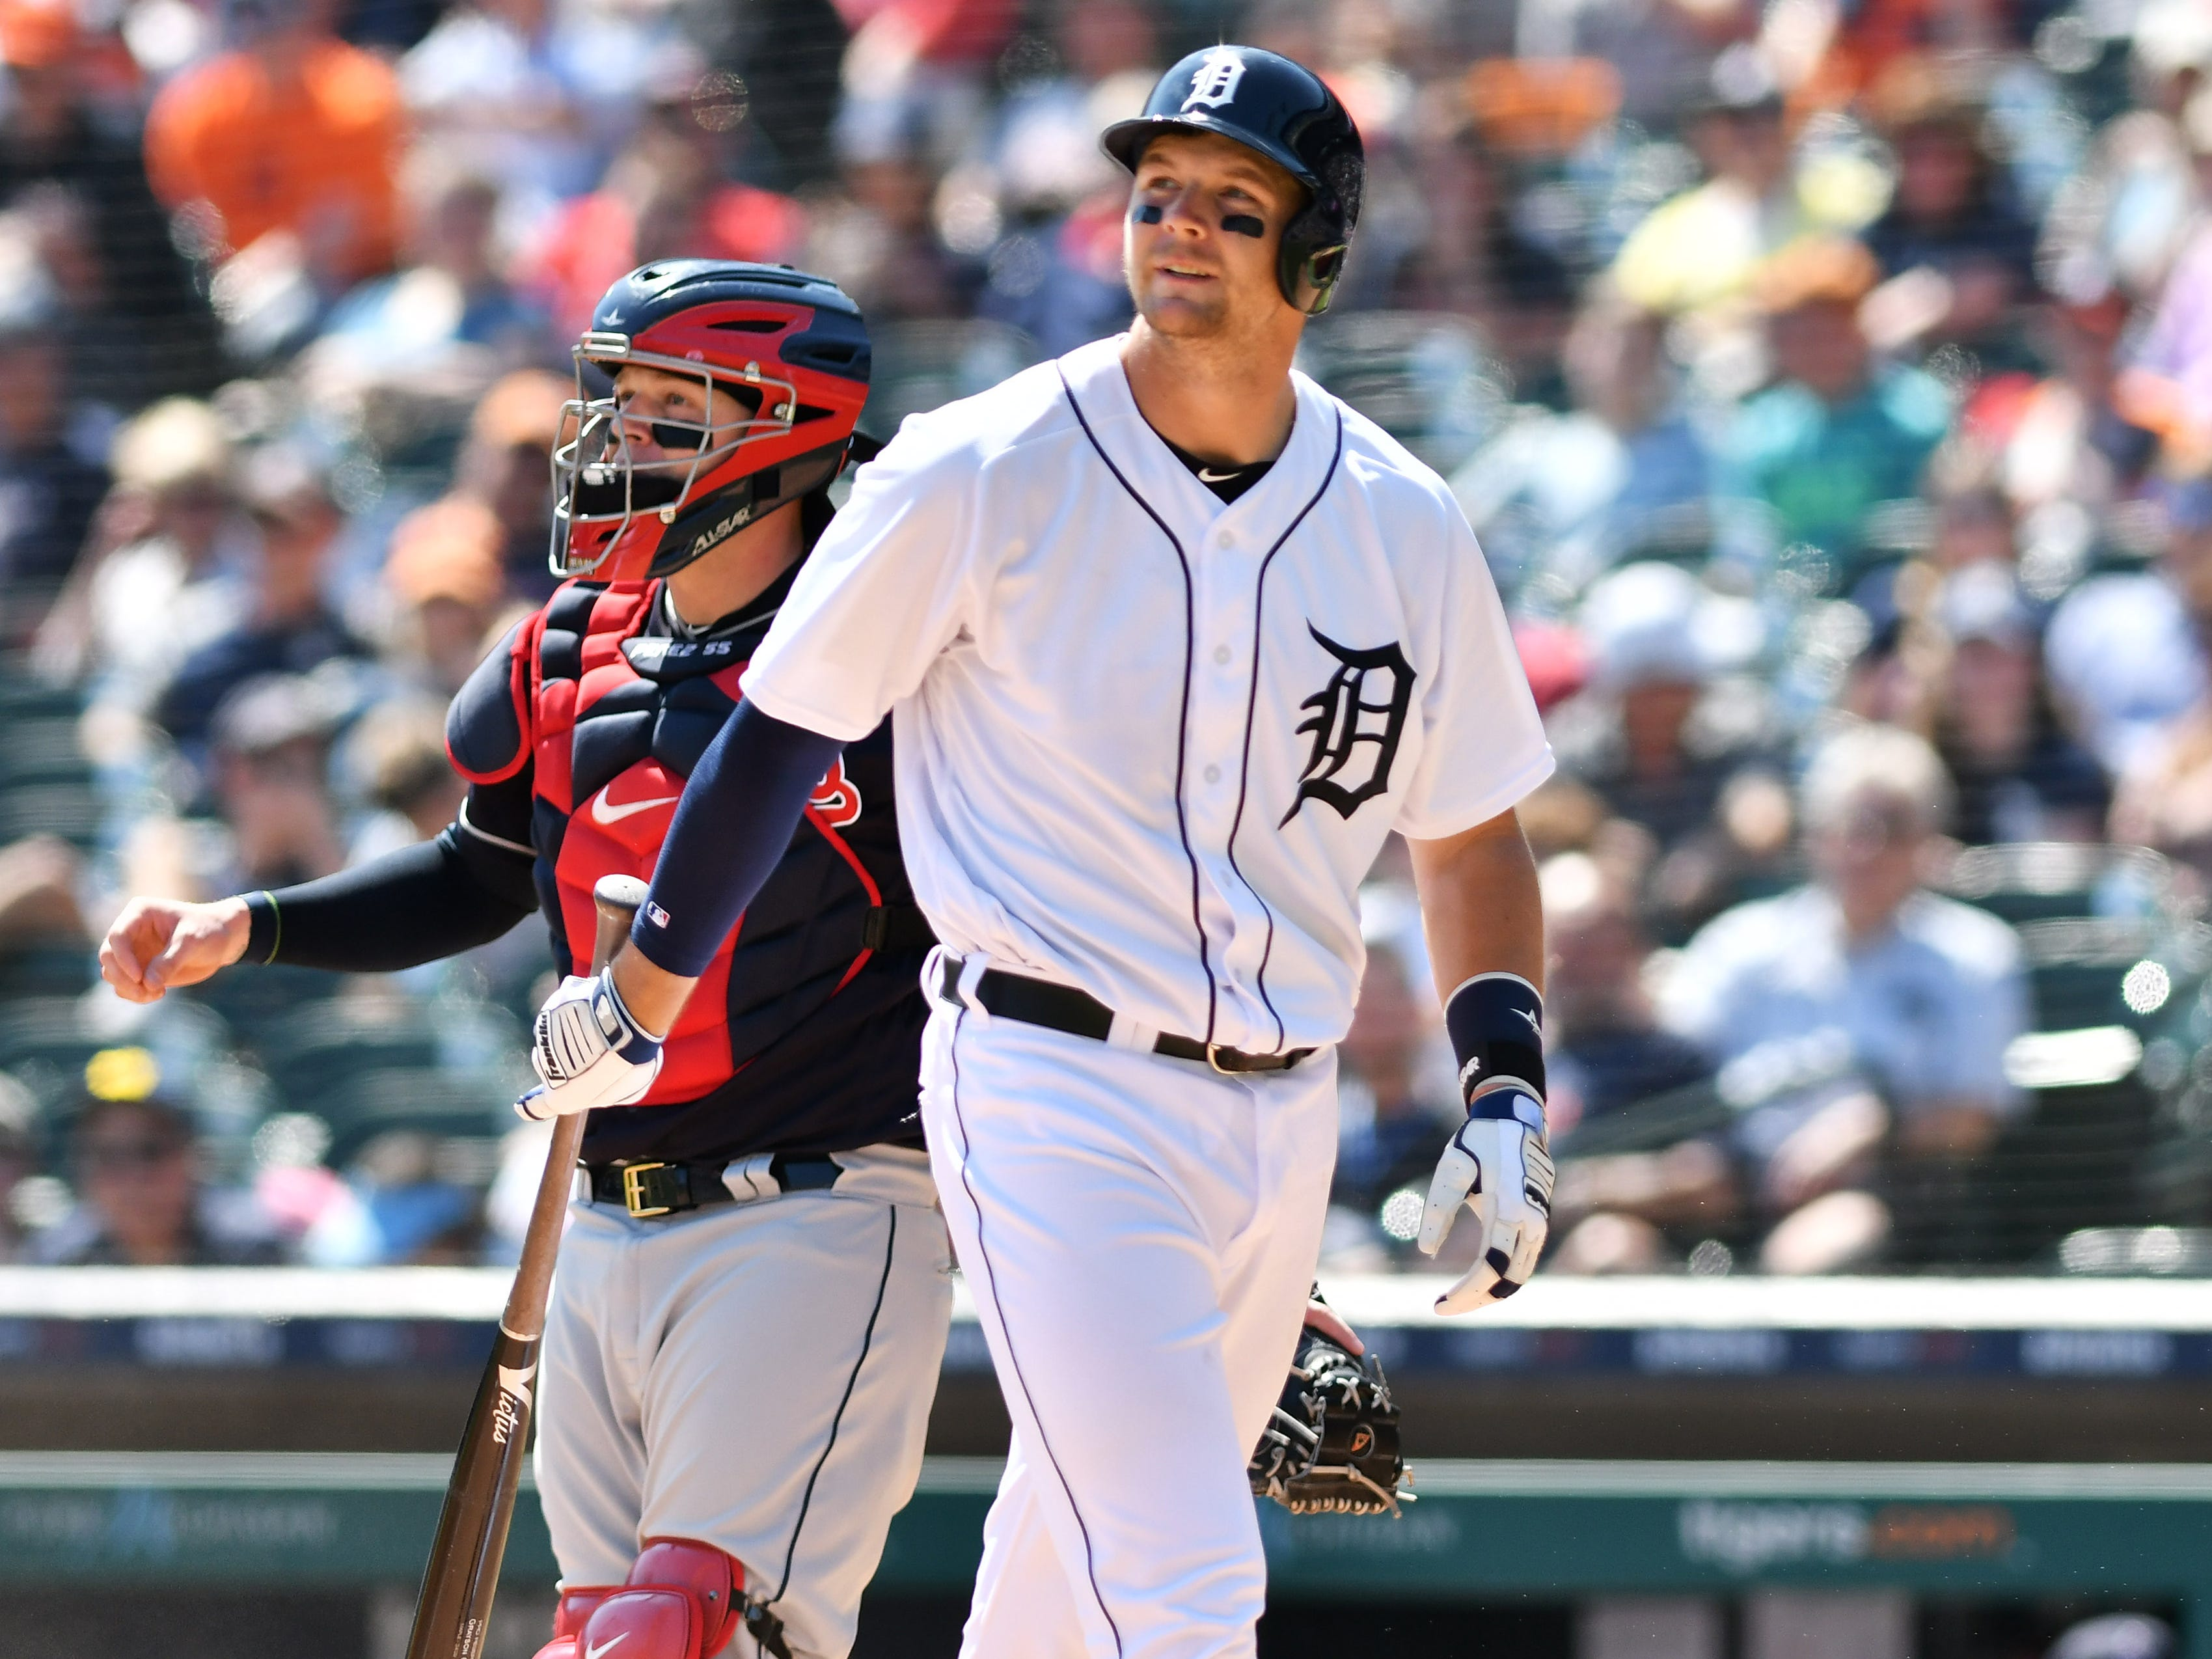 POSITION PLAYERS (batting average/on-base percentage/slugging percentage): CATCHERS: Grayson Greiner (.219/.328/.281): The Tigers were generally pleased with Greiner's work behind the plate this season. He was a quick study with the pitching staff, and got high praise for his ability to adjust the game plan on the fly within games. He didn't hit much, but he had a .355 on-base percentage after the All-Star break, drawing 12 walks.  Mid-term grade: Inc. Second-half grade: C Final grade: C